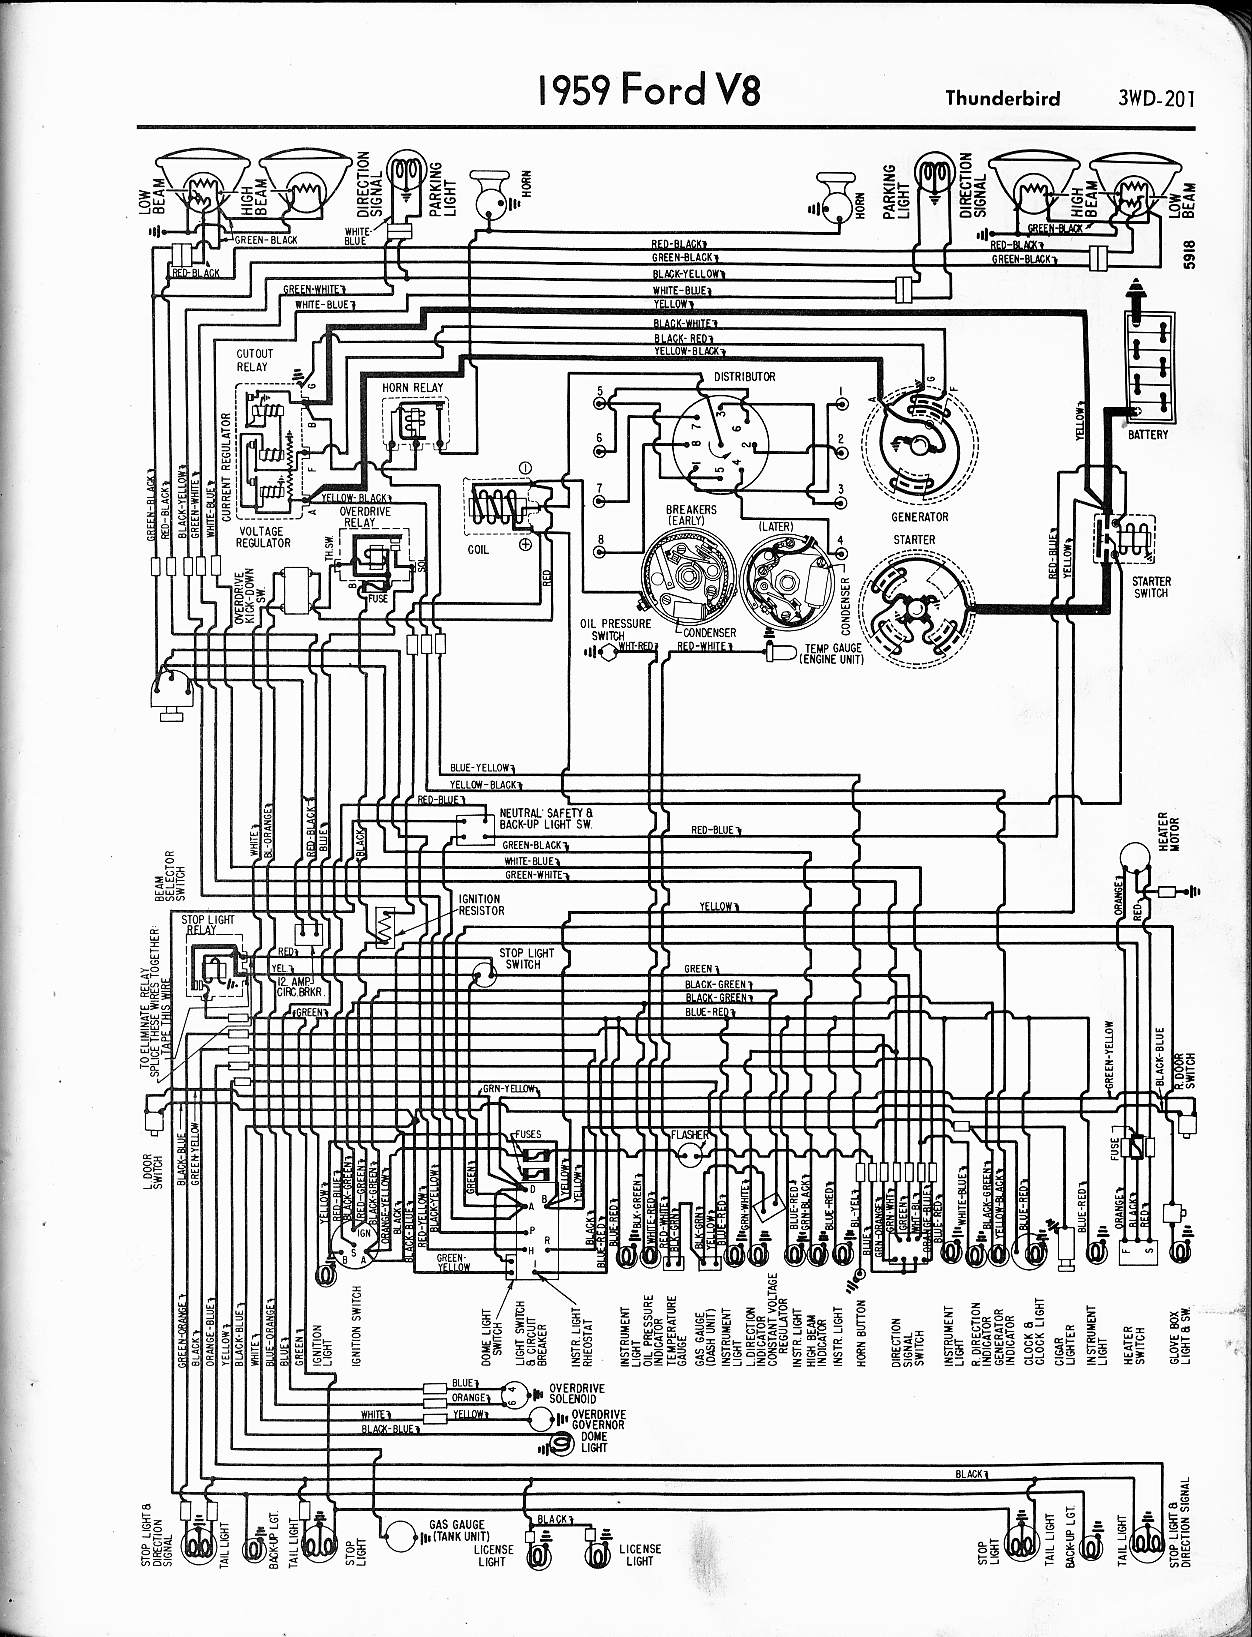 1956 Thunderbird Wiring Diagram Books Of Wiring Diagram \u2022 Fusion Wiring  Diagram Thunderbird Wiring Diagram